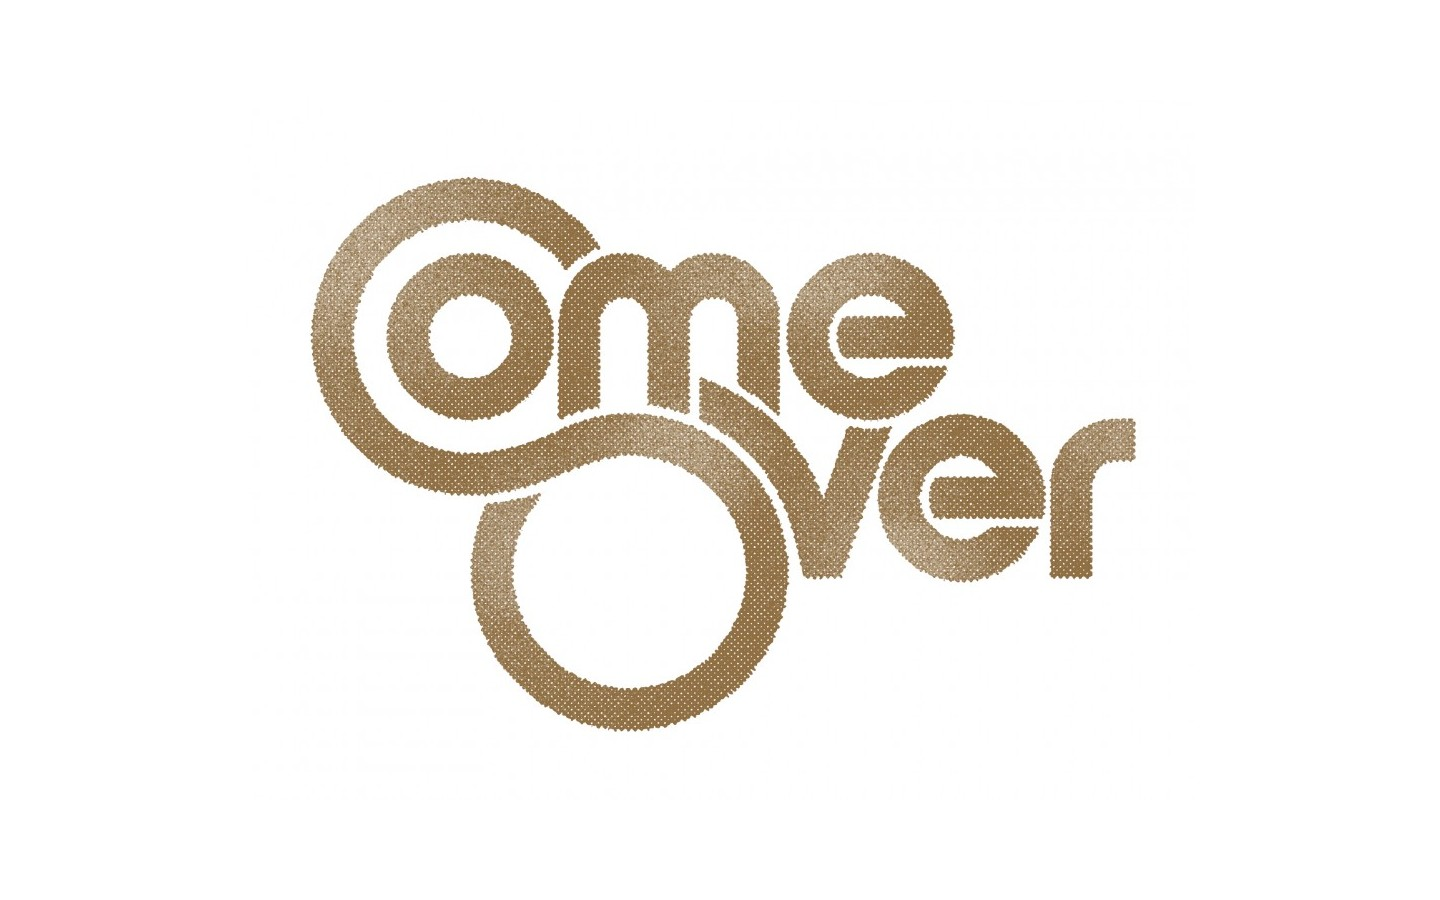 Game Over Wallpaper - Calligraphy , HD Wallpaper & Backgrounds